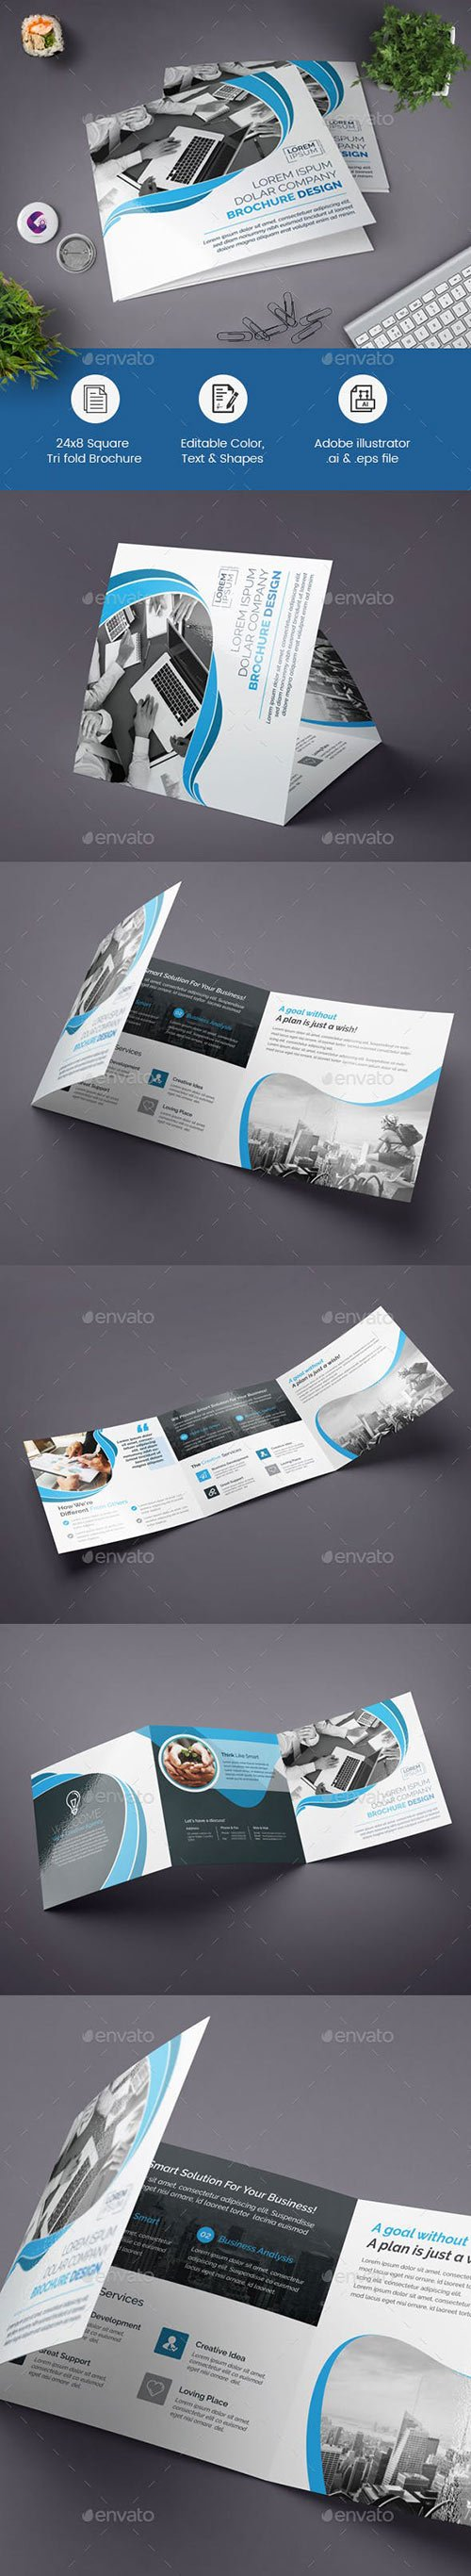 GraphicRiver - Blue Square Tri-fold Brochure 22588387